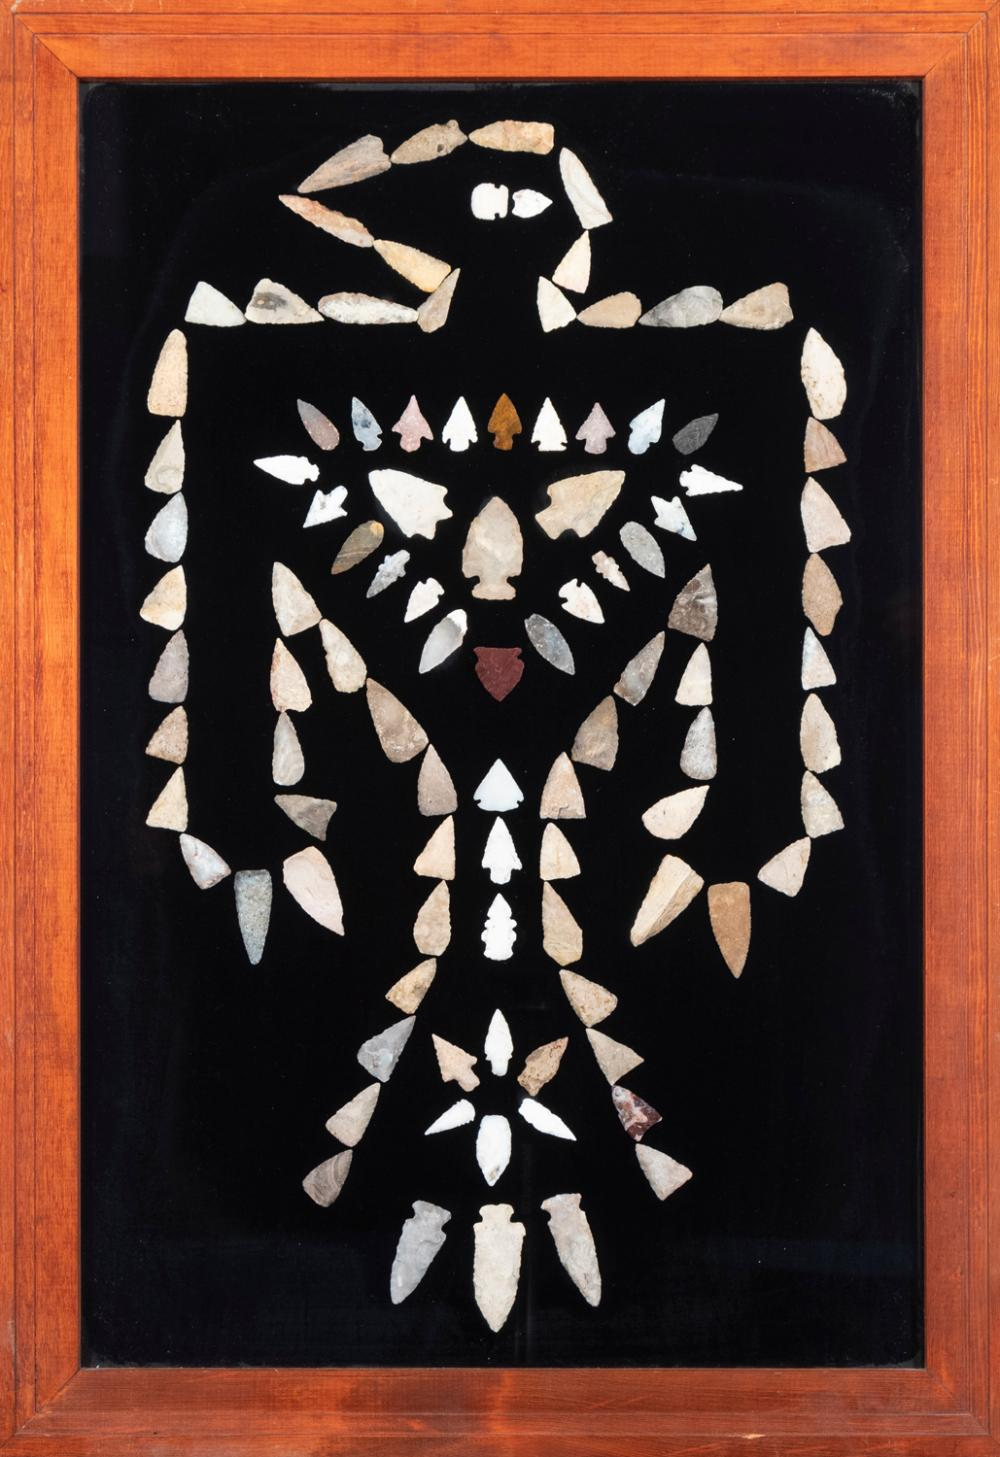 Framed Collection of 100 Arrowheads